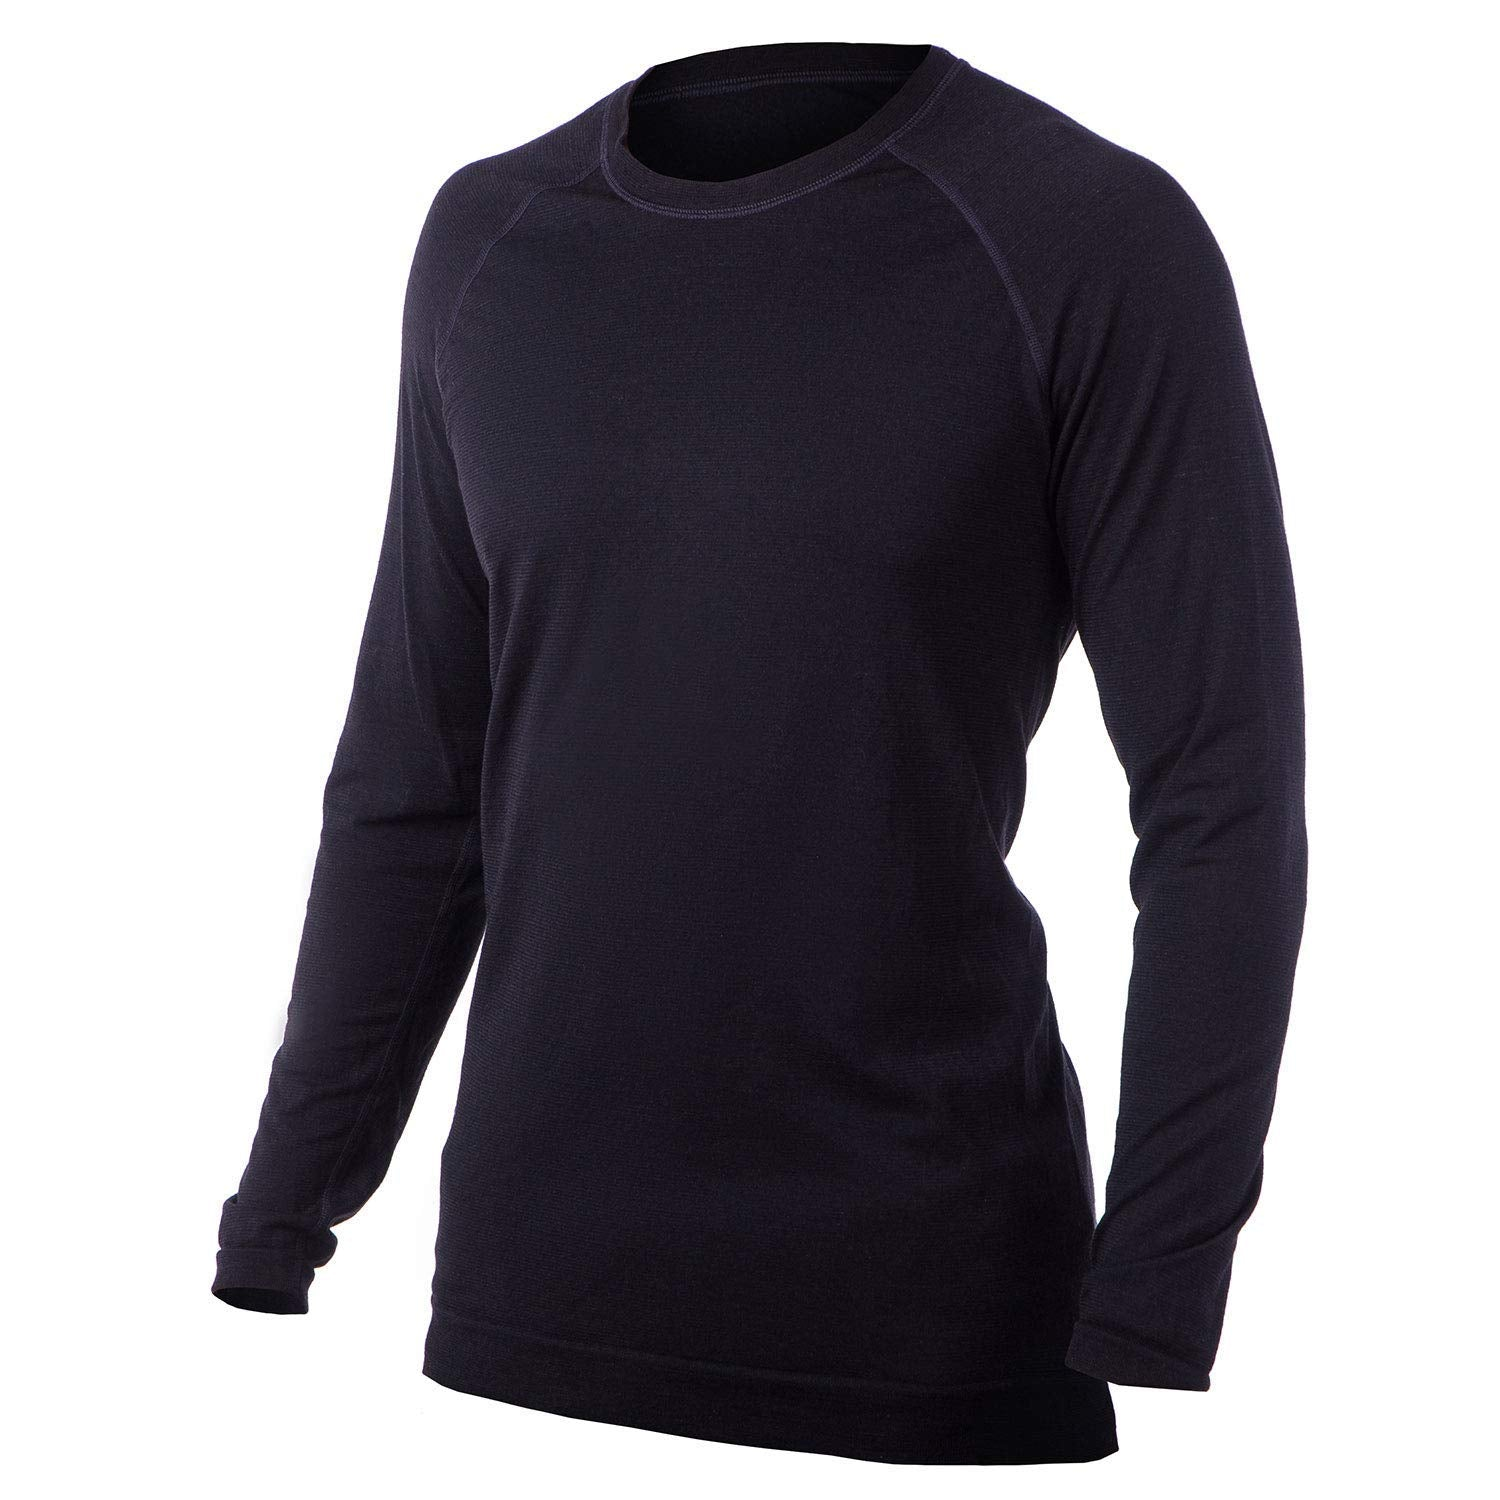 Men's Merino Wool Lightweight Base Layer Crew – Long Sleeve Shirt - Made in Italy, Ski, Winter, Warmth